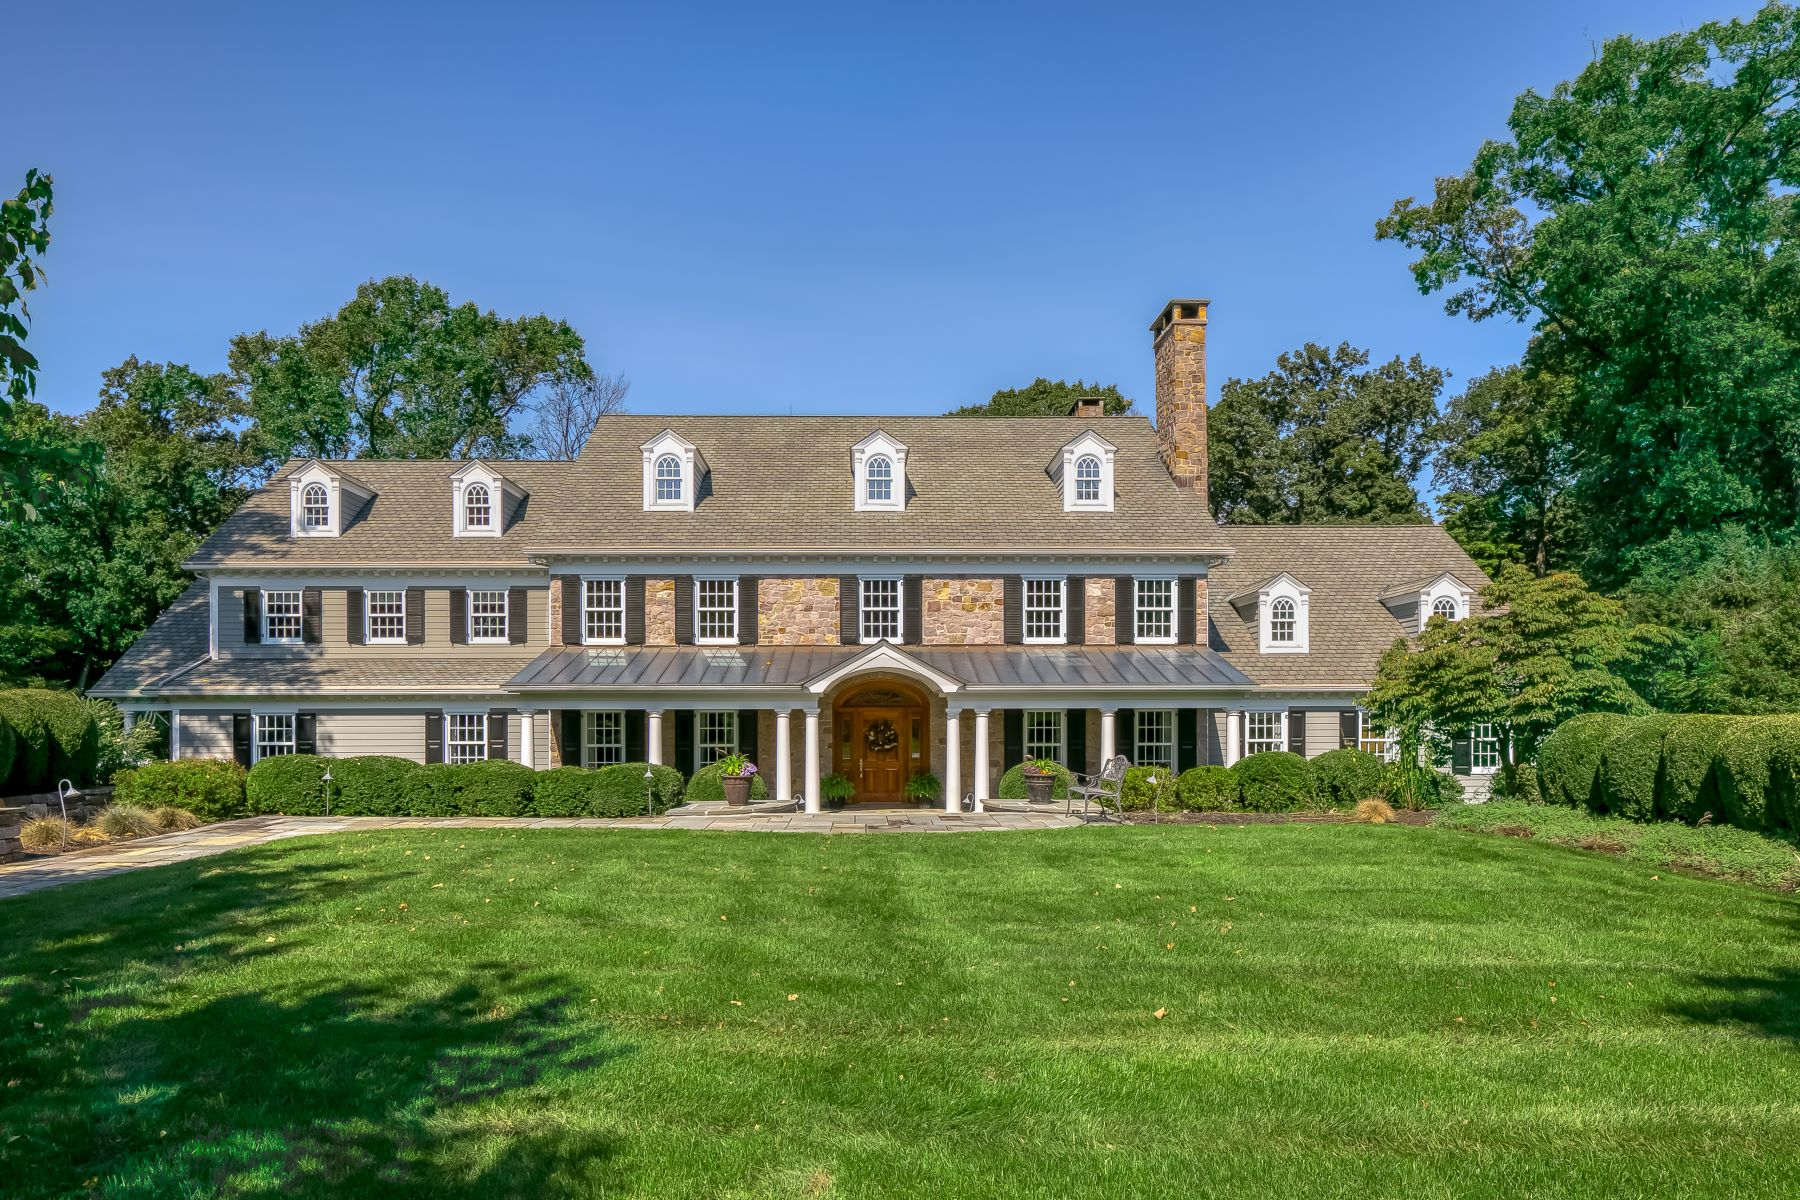 Single Family Home for Sale at Gorgeous Custom Home 2 Sherwood Farm Road, Far Hills, New Jersey 07931 United States